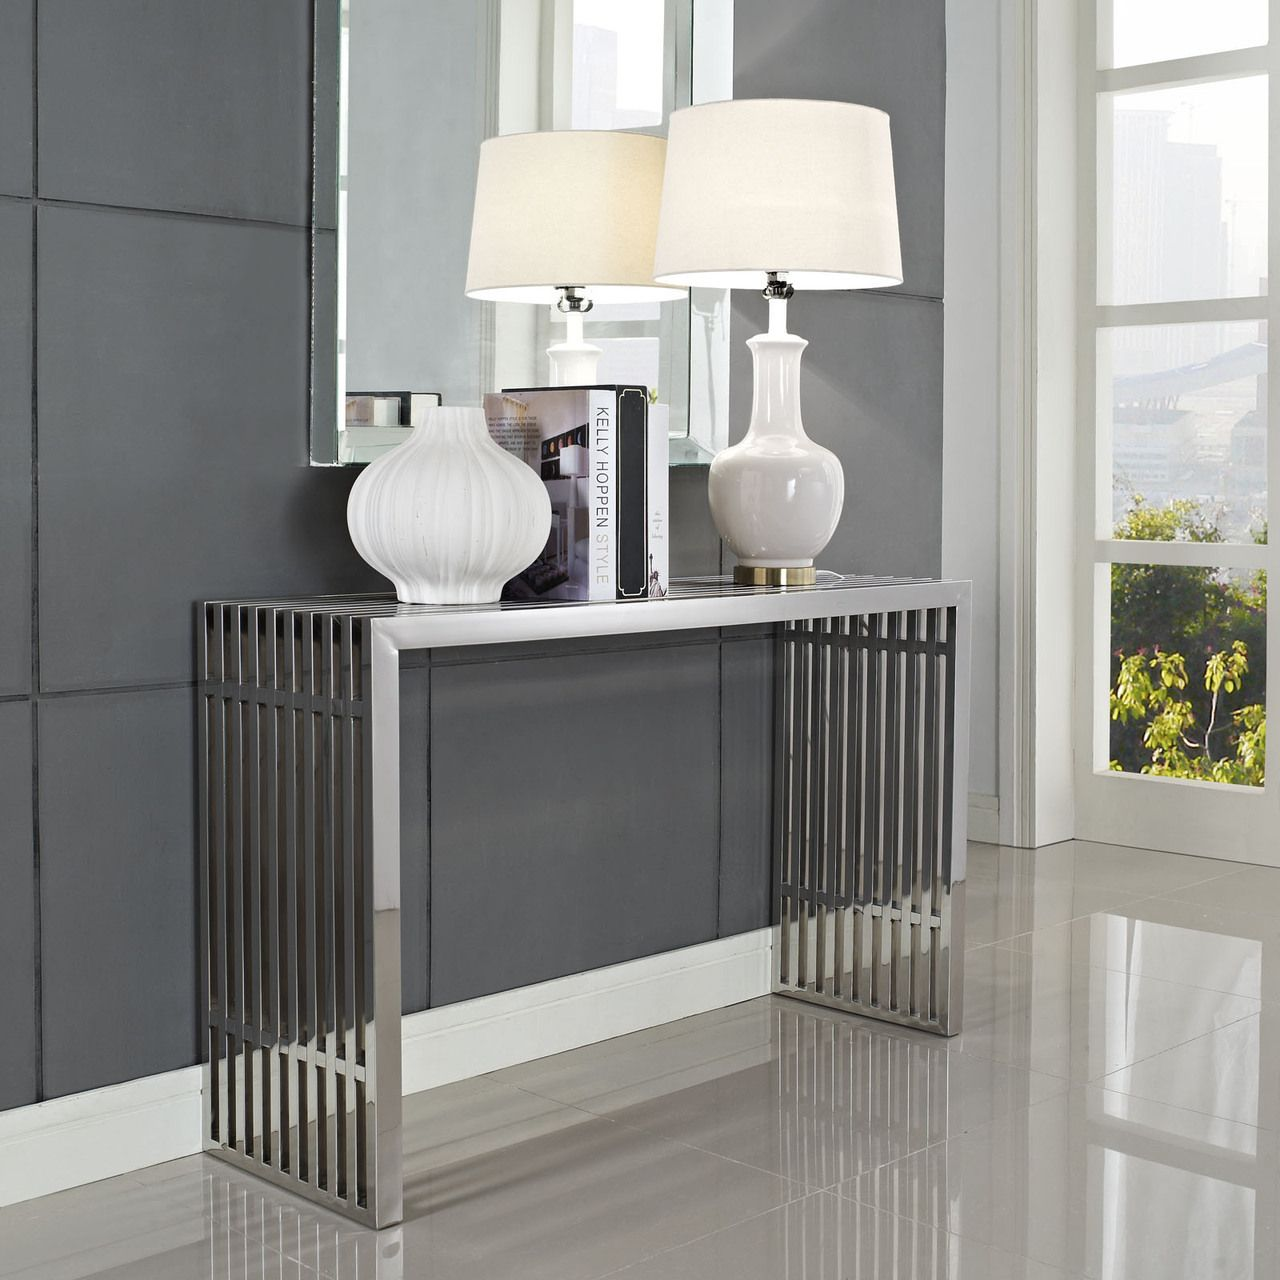 Gridiron console table in silver modway eeislv tables in